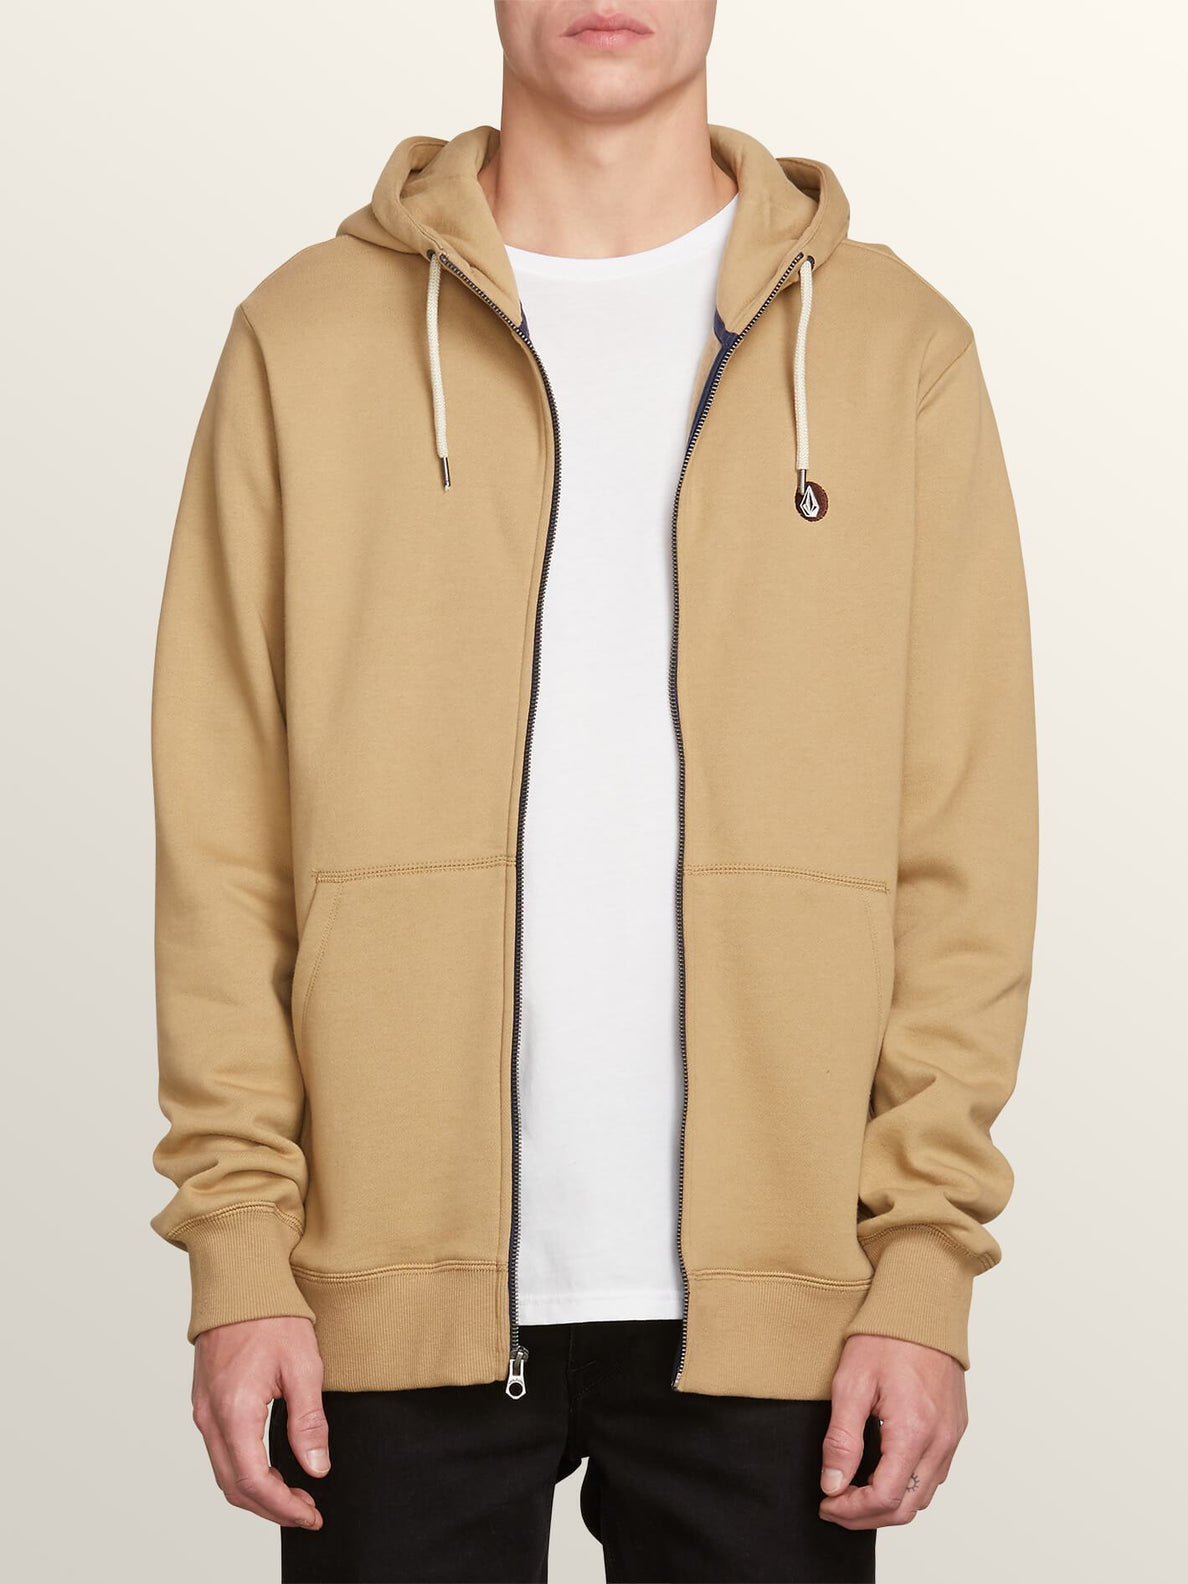 Single Stone Zip Hoodie - Sand Brown